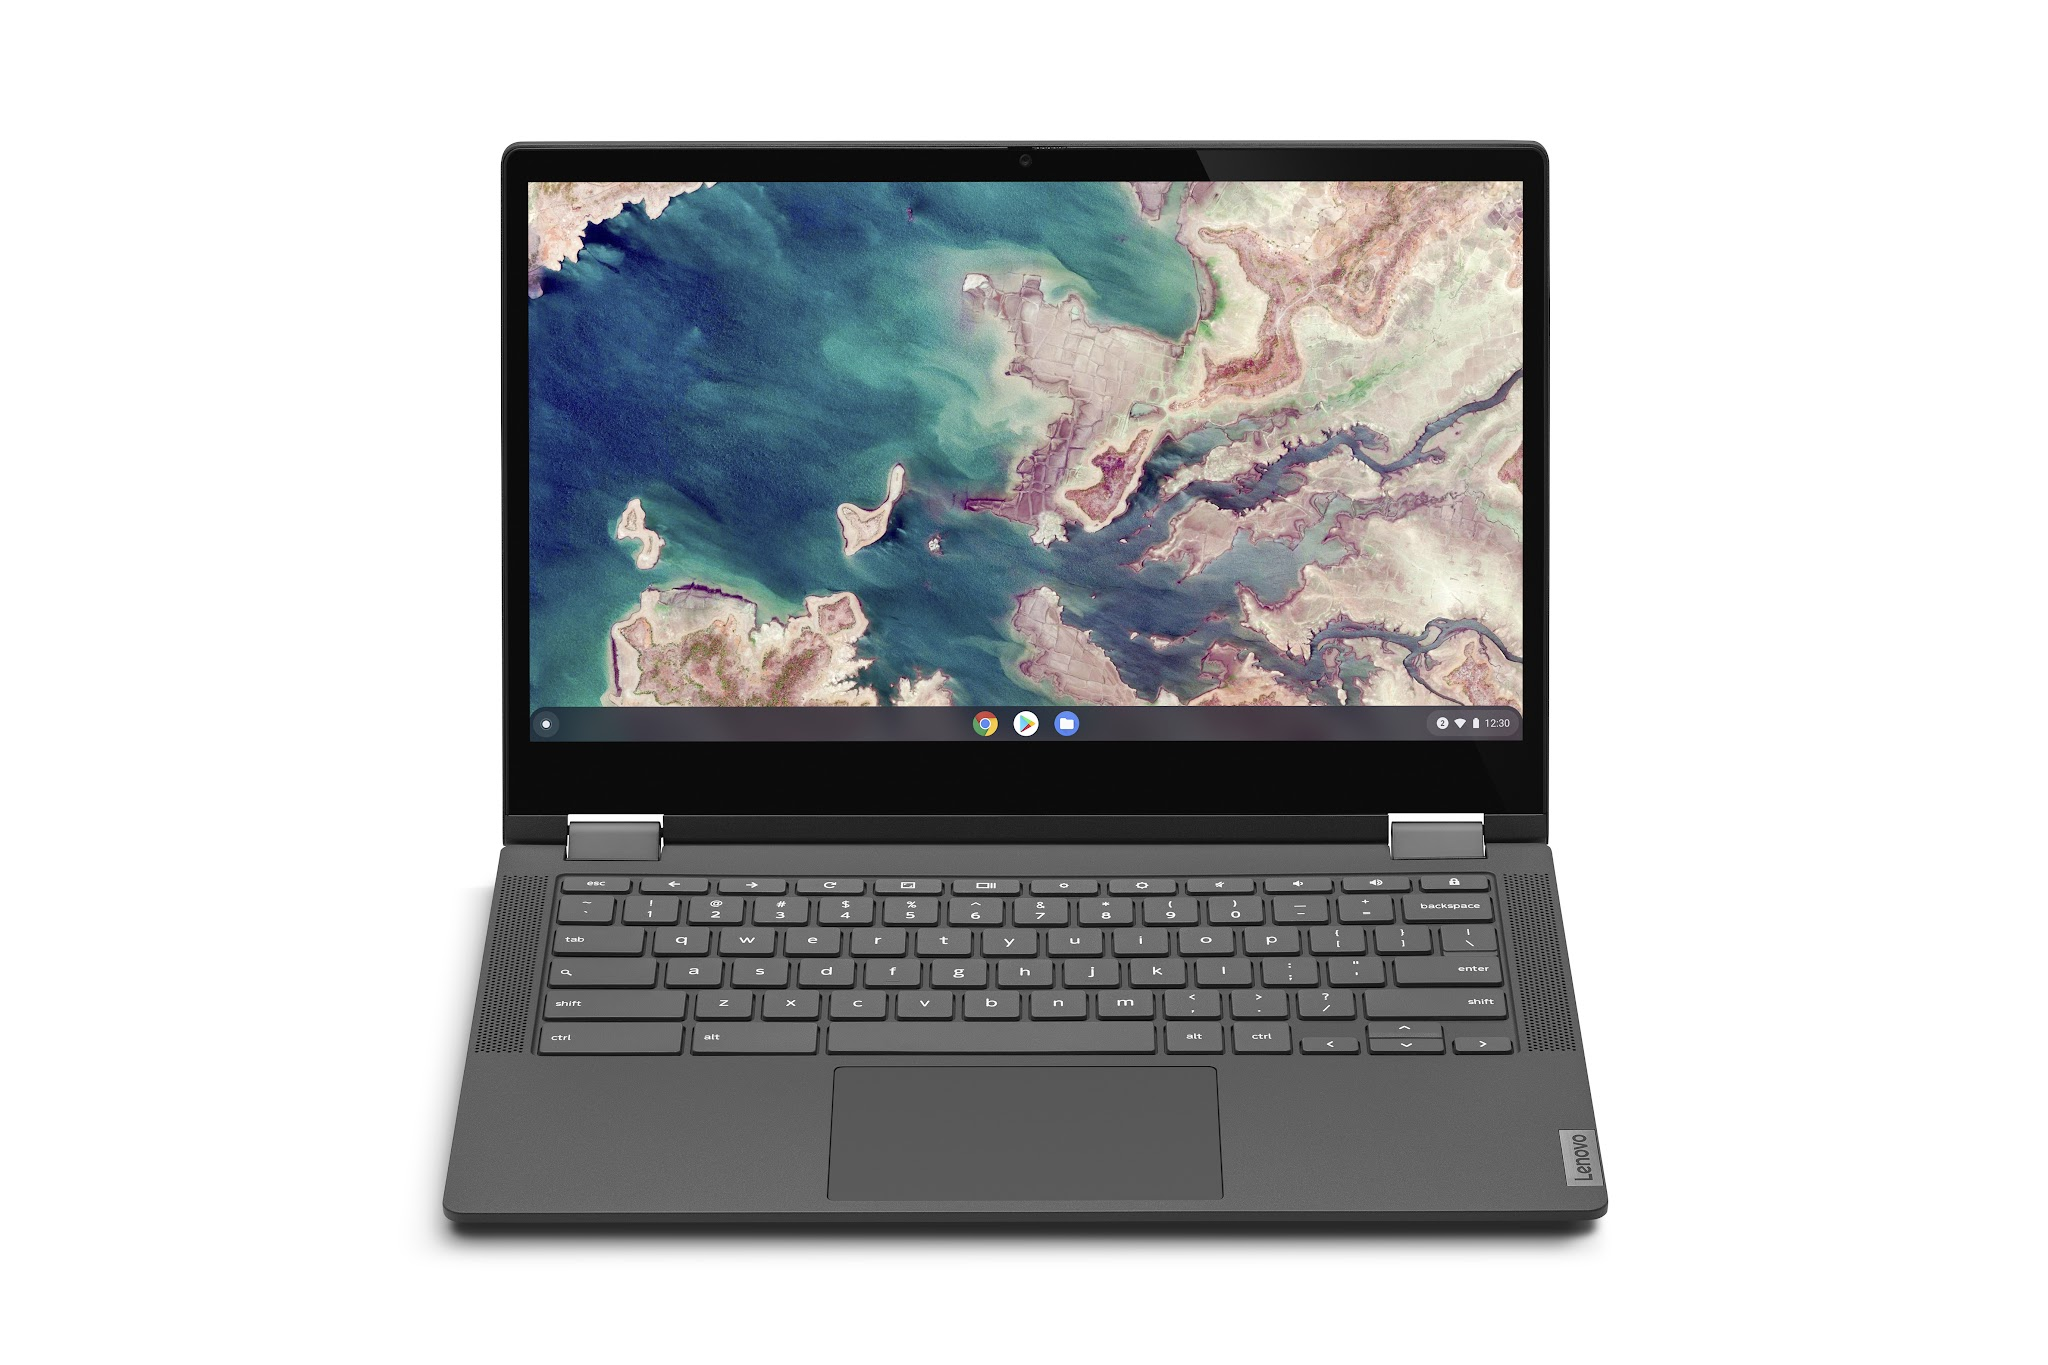 Lenovo IdeaPad Flex 5i (13 tum, 5) - photo 2